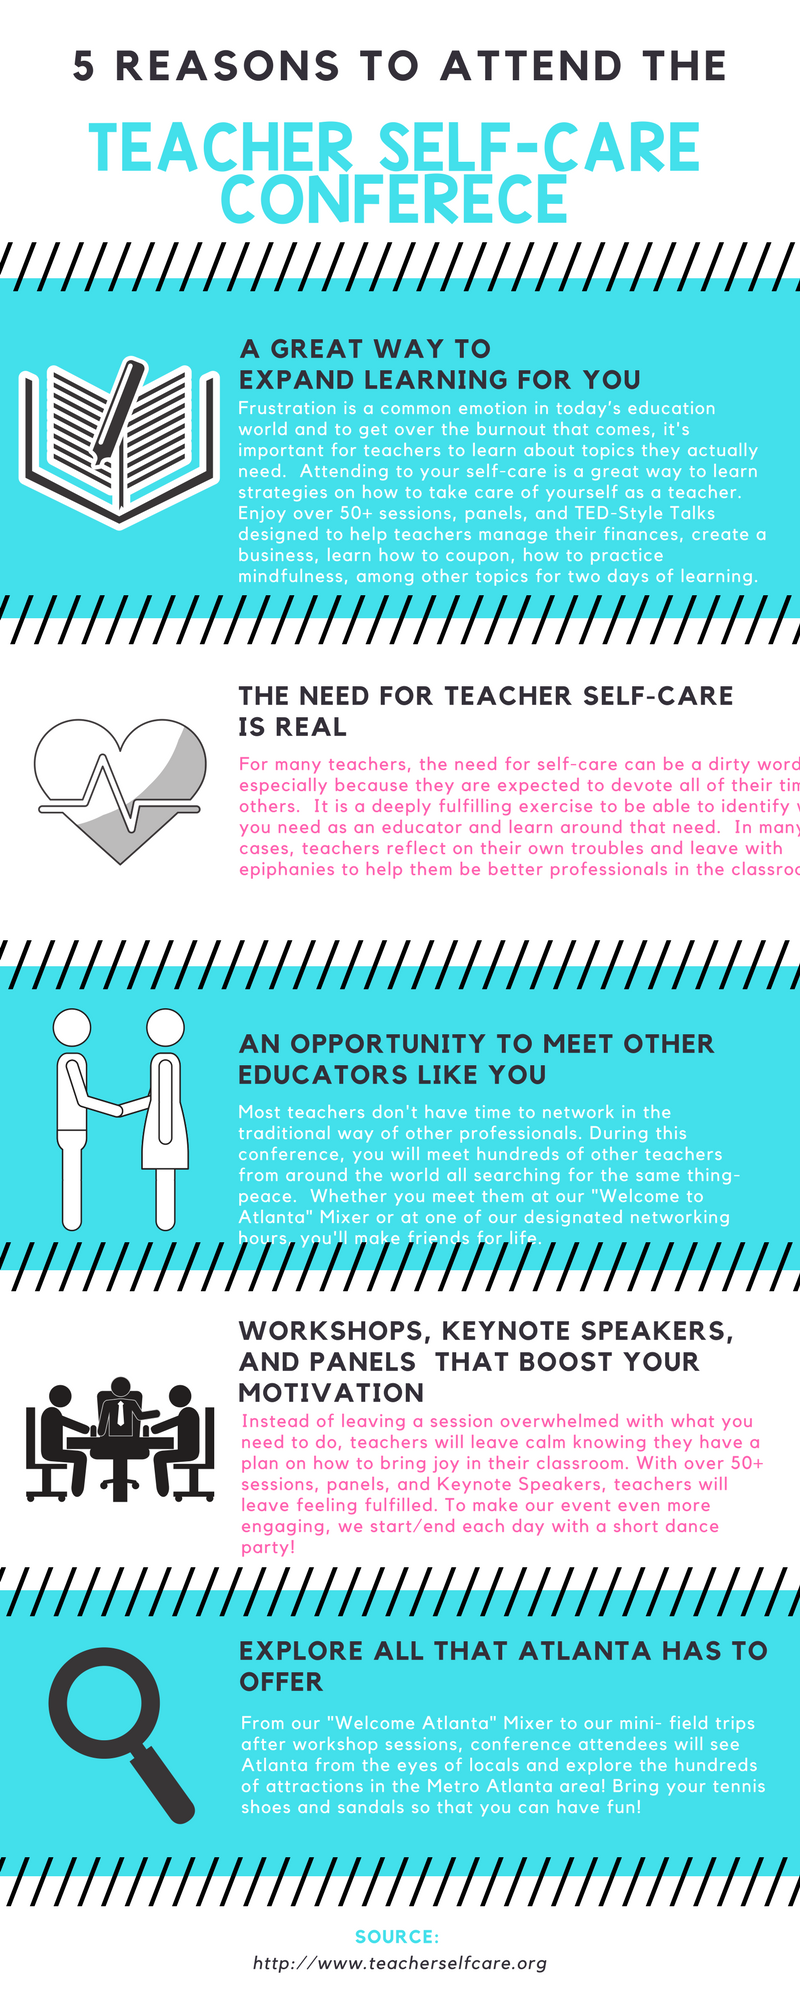 5 Reasons to Attend the Teacher Self-Care Conference